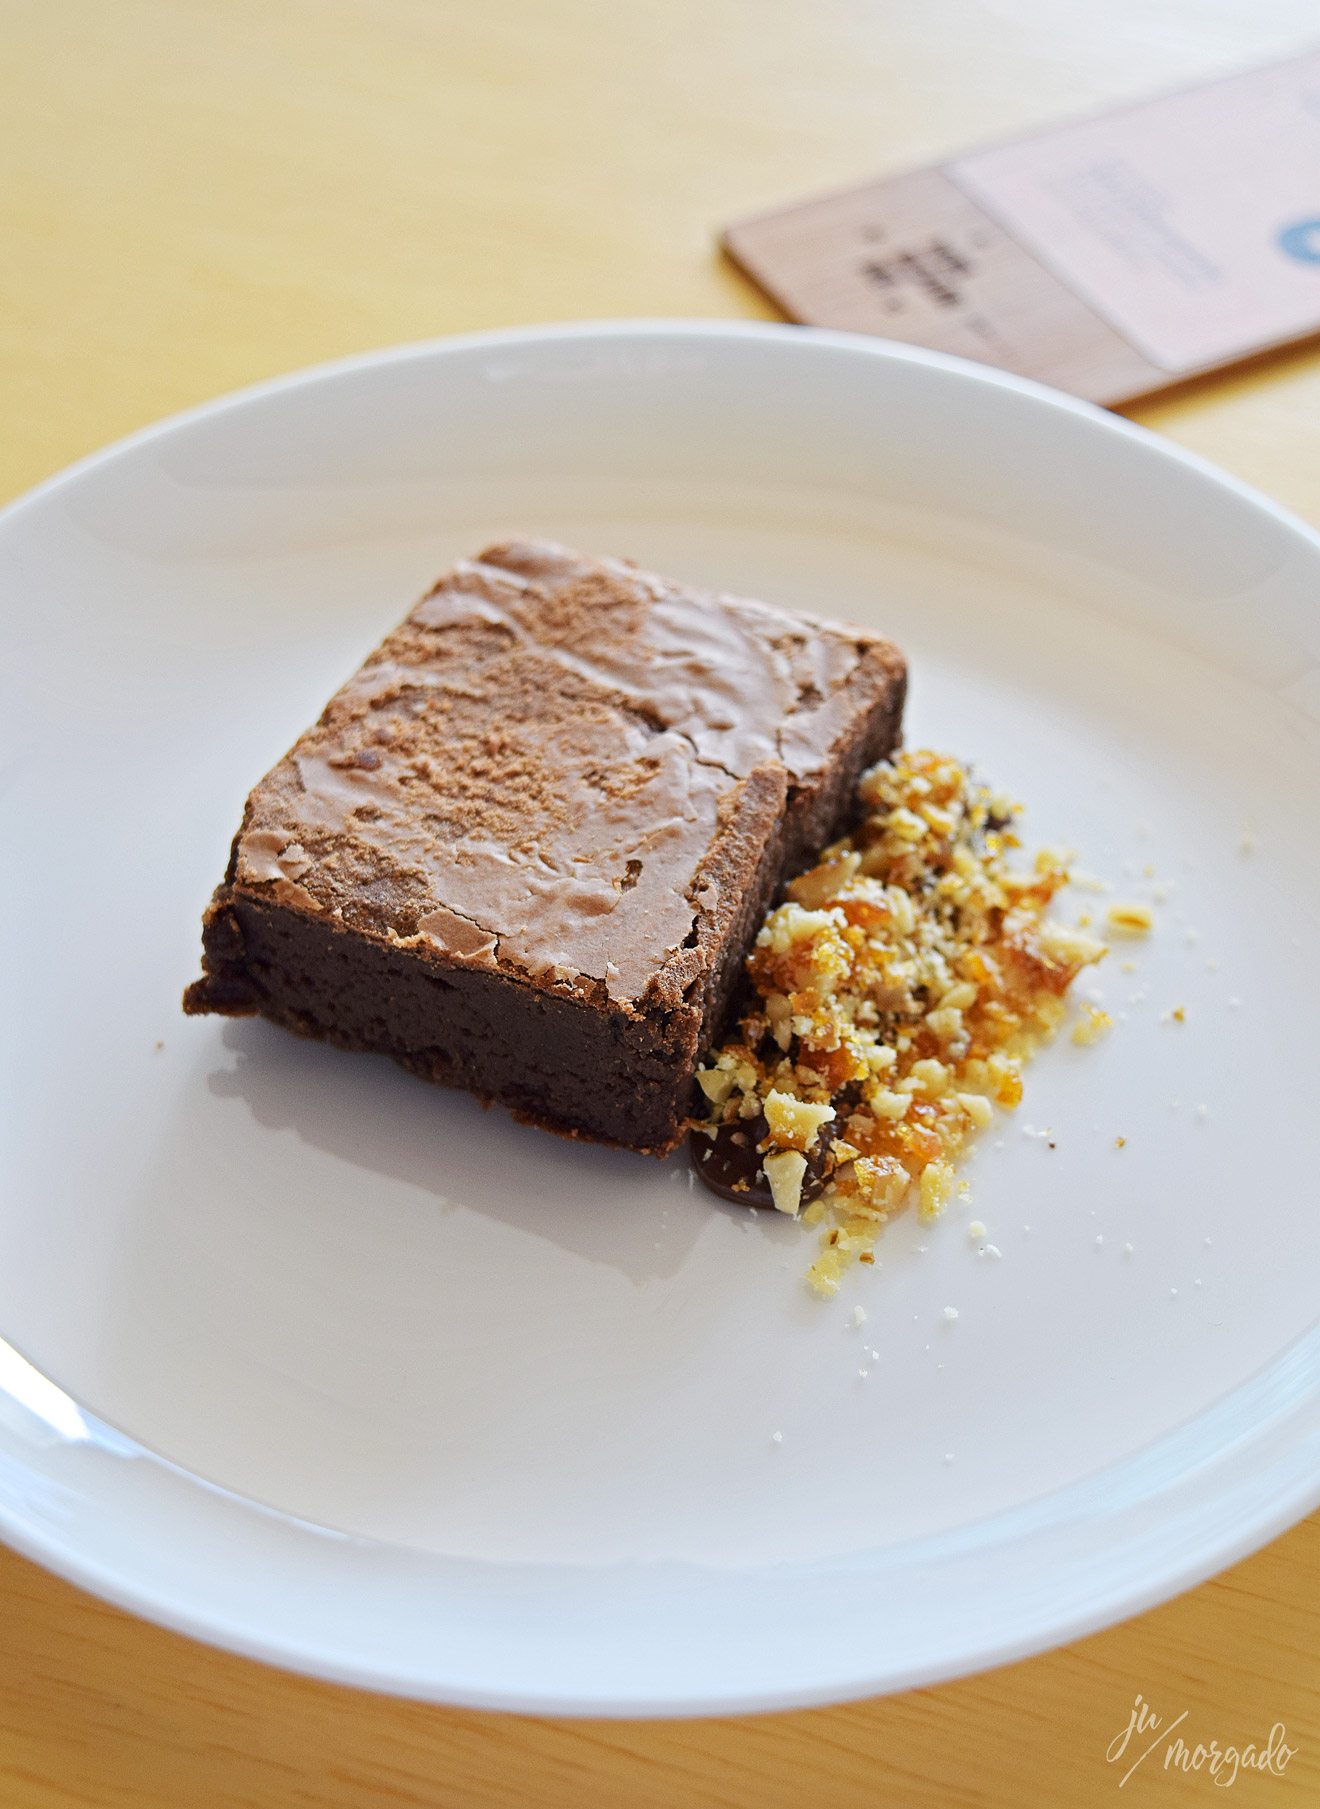 Brownie com ganache e nozes carameladas do Melbourne